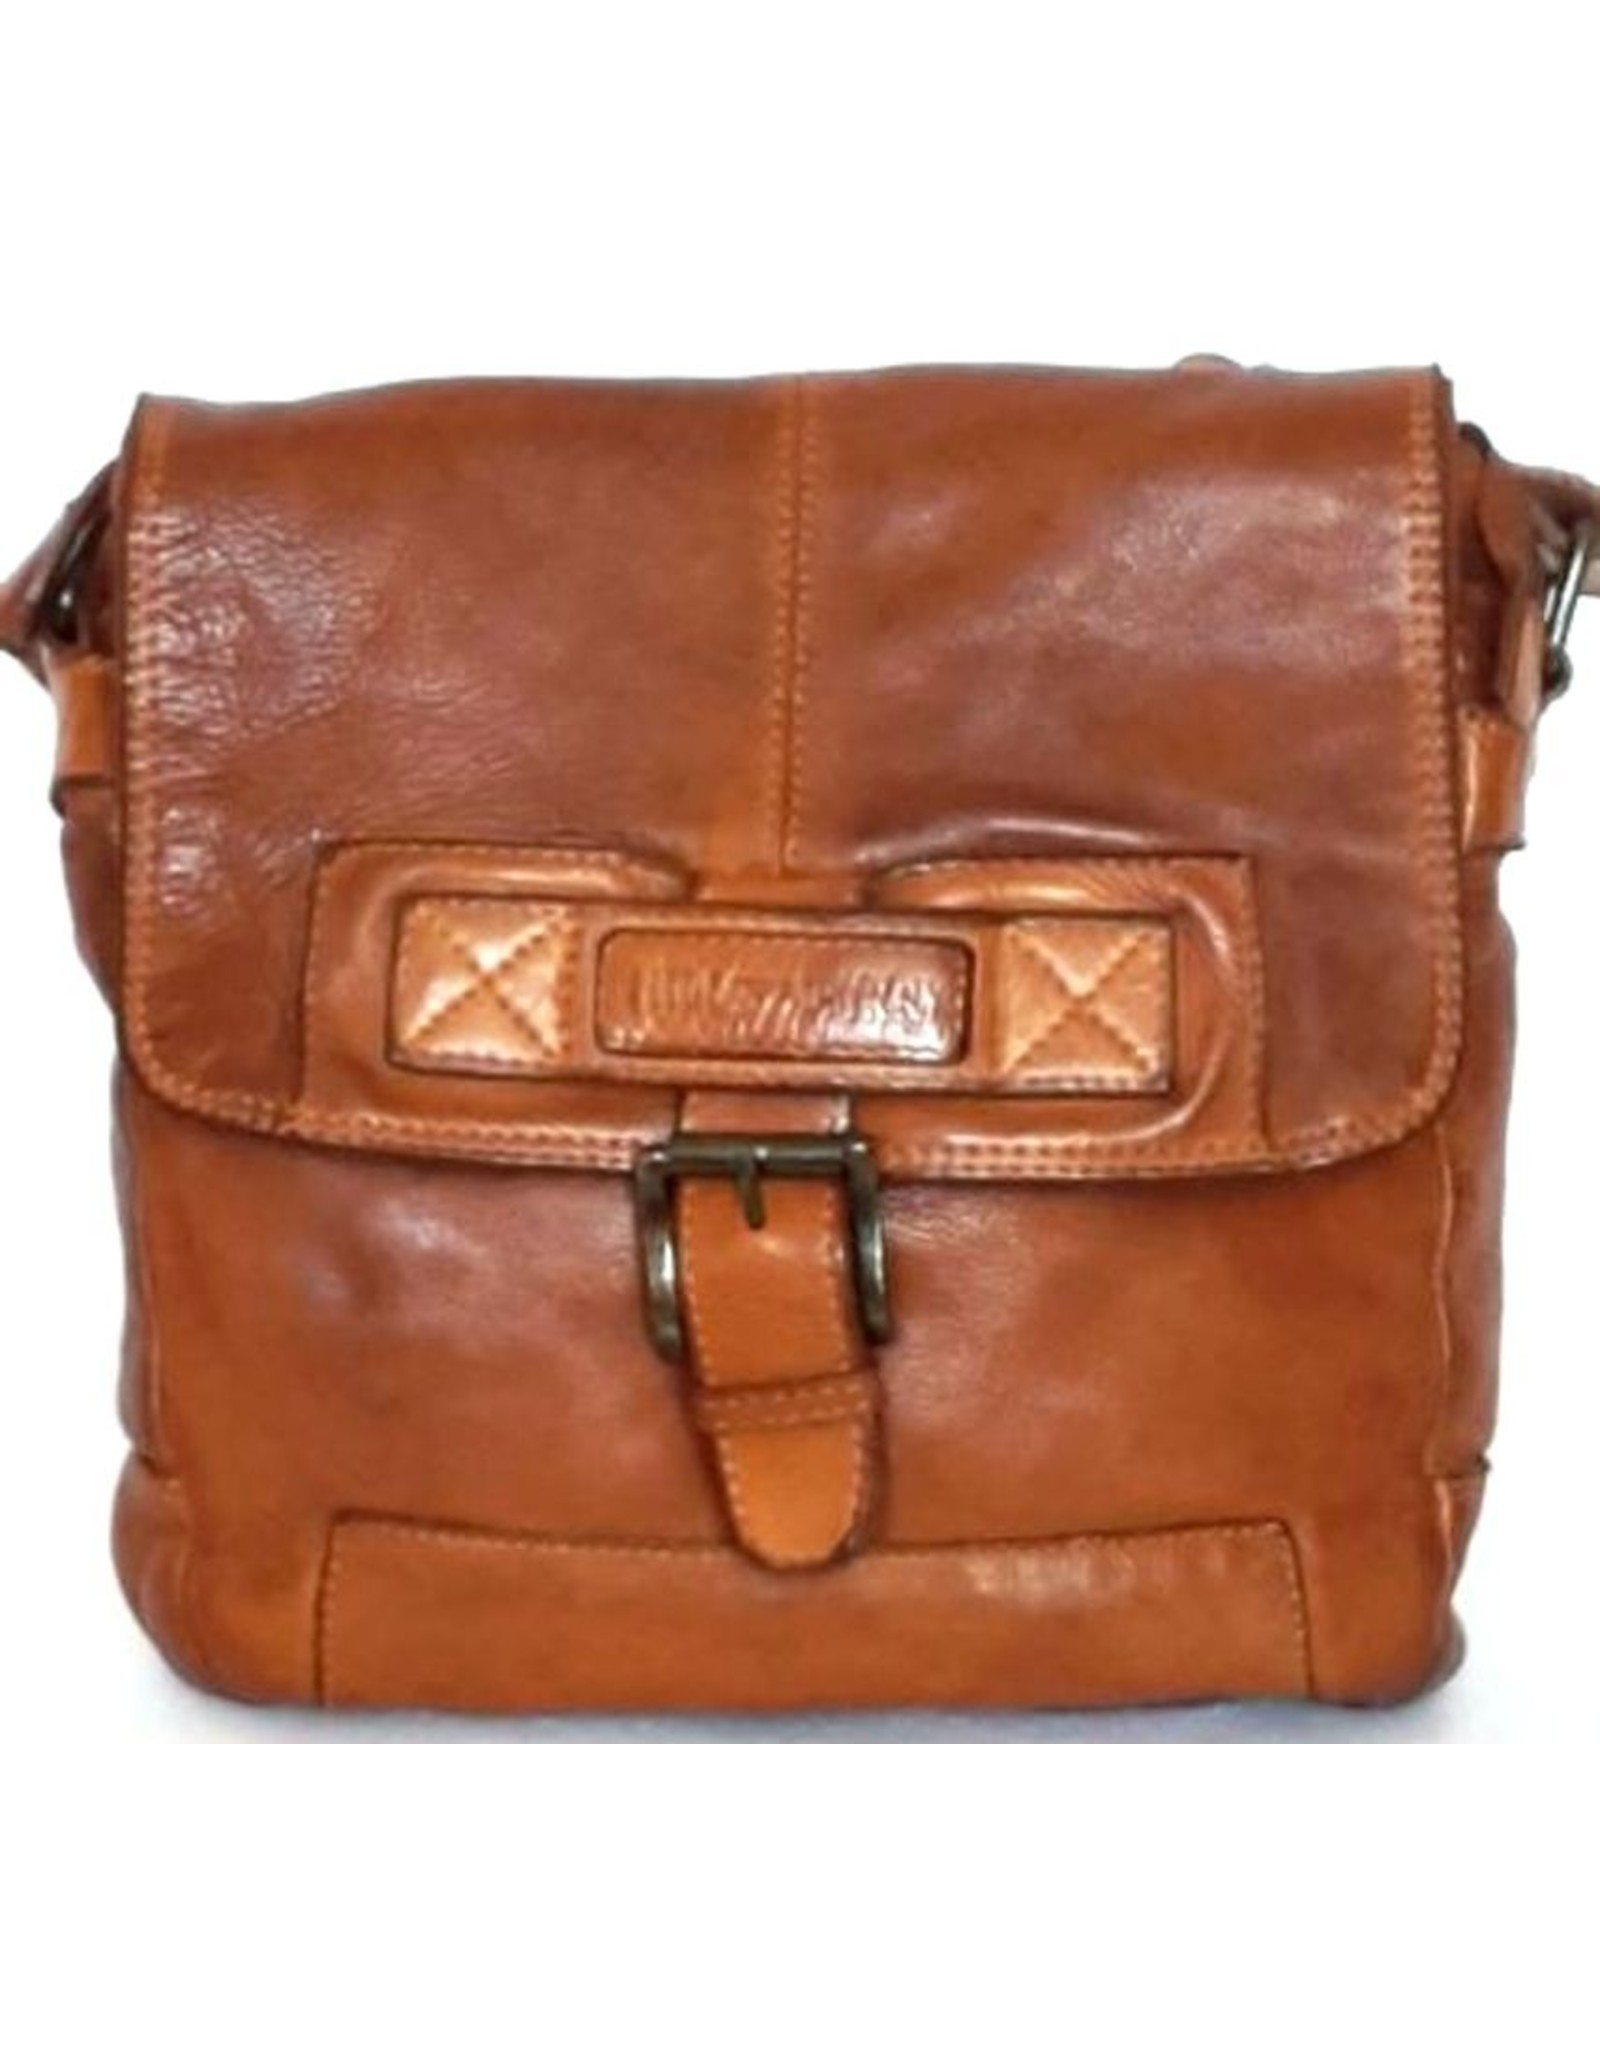 HillBurry Leather Shoulder bags Leather crossbody bags - HillBurry crossbody bag (washed leather)